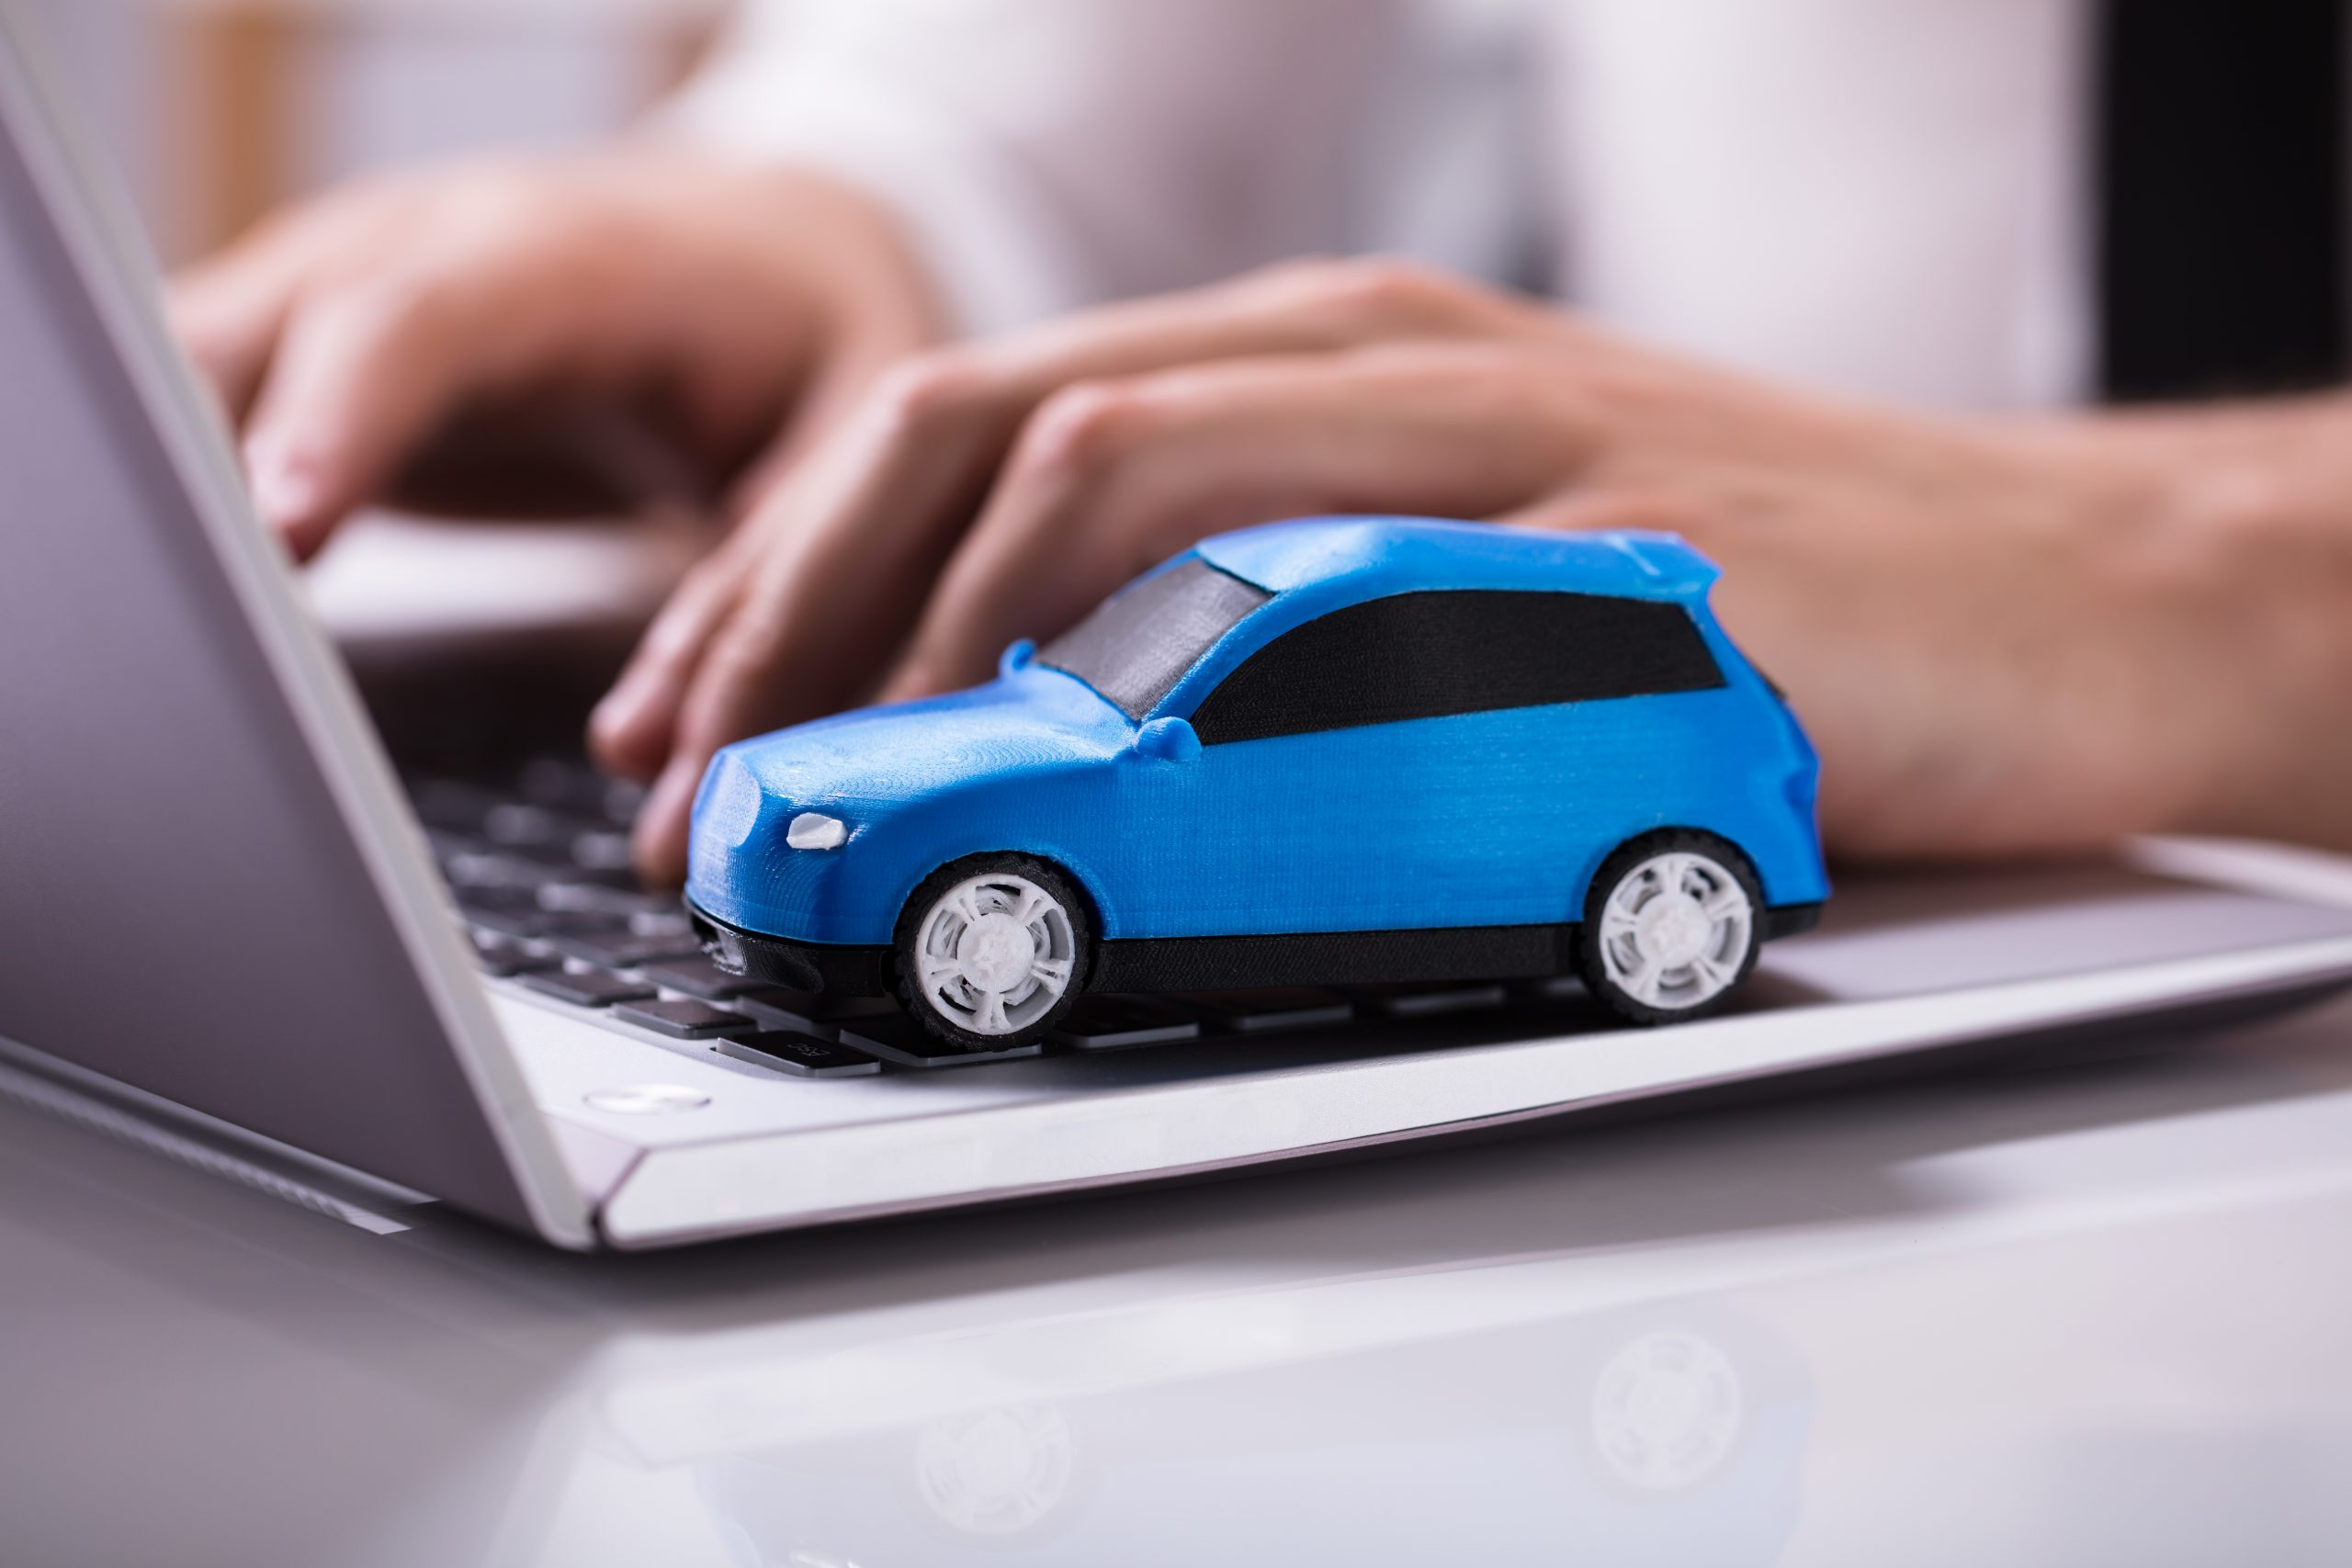 Close-up,Of,A,Small,Blue,Car,On,Laptop,Keypad